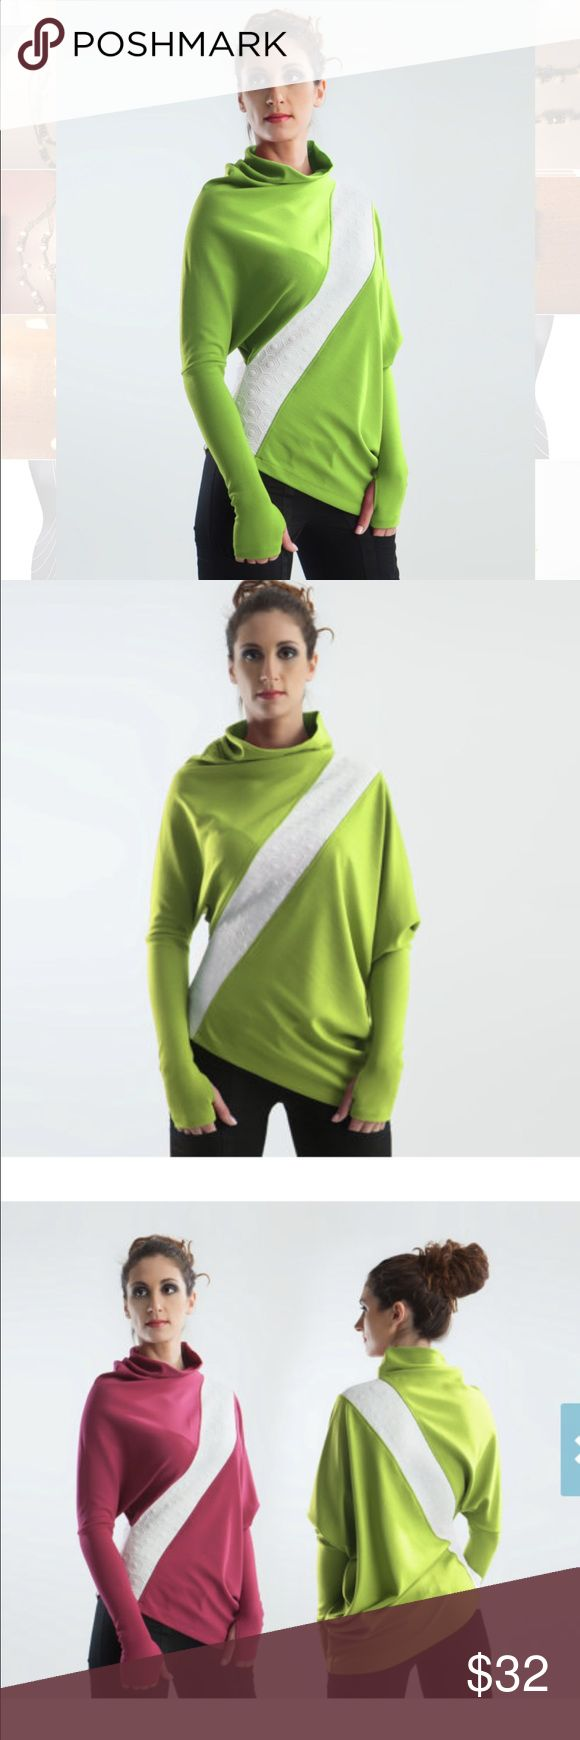 Batwing oversize asymmetric pullover sweater Handmade lime-green batwing oversize pullover w/ textured white stripe & thumb holes in sleeves. Asymmetric design that's both retro & modern, somehow? Got this straight from the Latvia-based designer on Etsy (bought both pink & lime colors; kept pink). Stretchy, dense jersey fabric w/ modern texture; thumb holes keep hands warm & prevent sleeves from riding up; quality, dense rayon jersey - does NOT pill; labels sewn on separately so they can be…